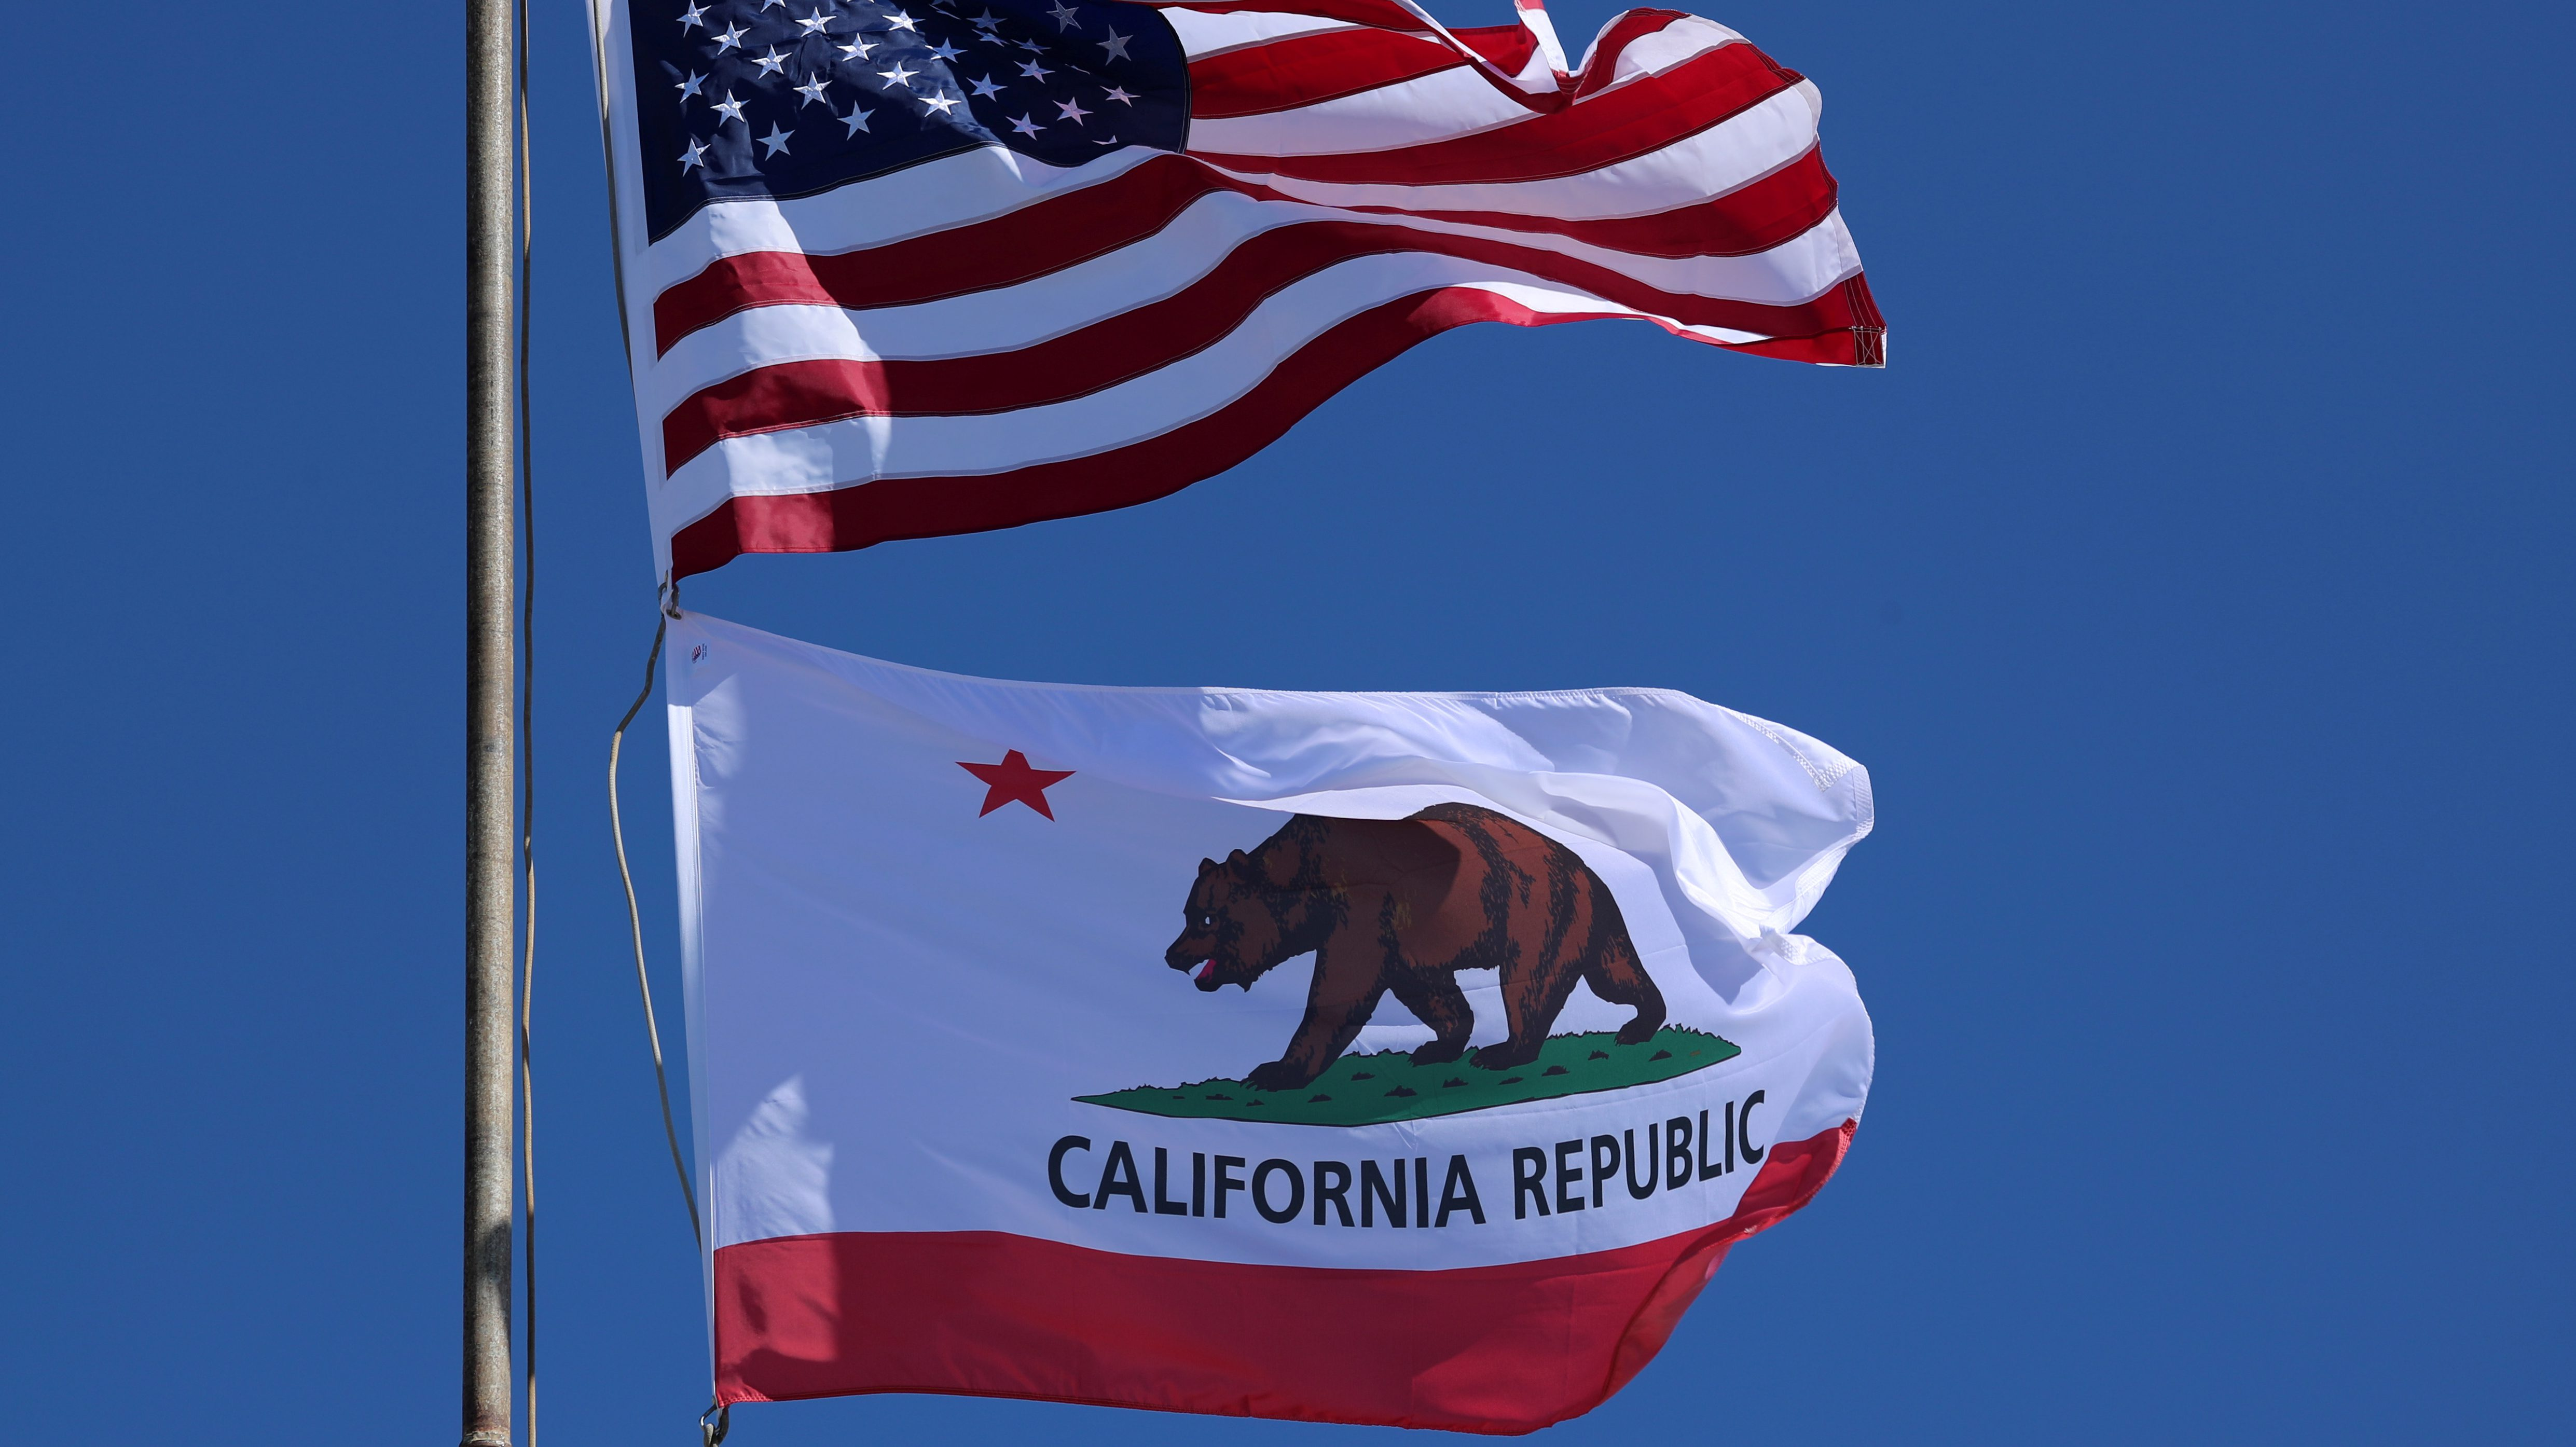 U.S. and California flags fly together on a flag pole in Oceanside, California, U.S., October 24,  2017.     REUTERS/Mike Blake - RC1292F3C1C0